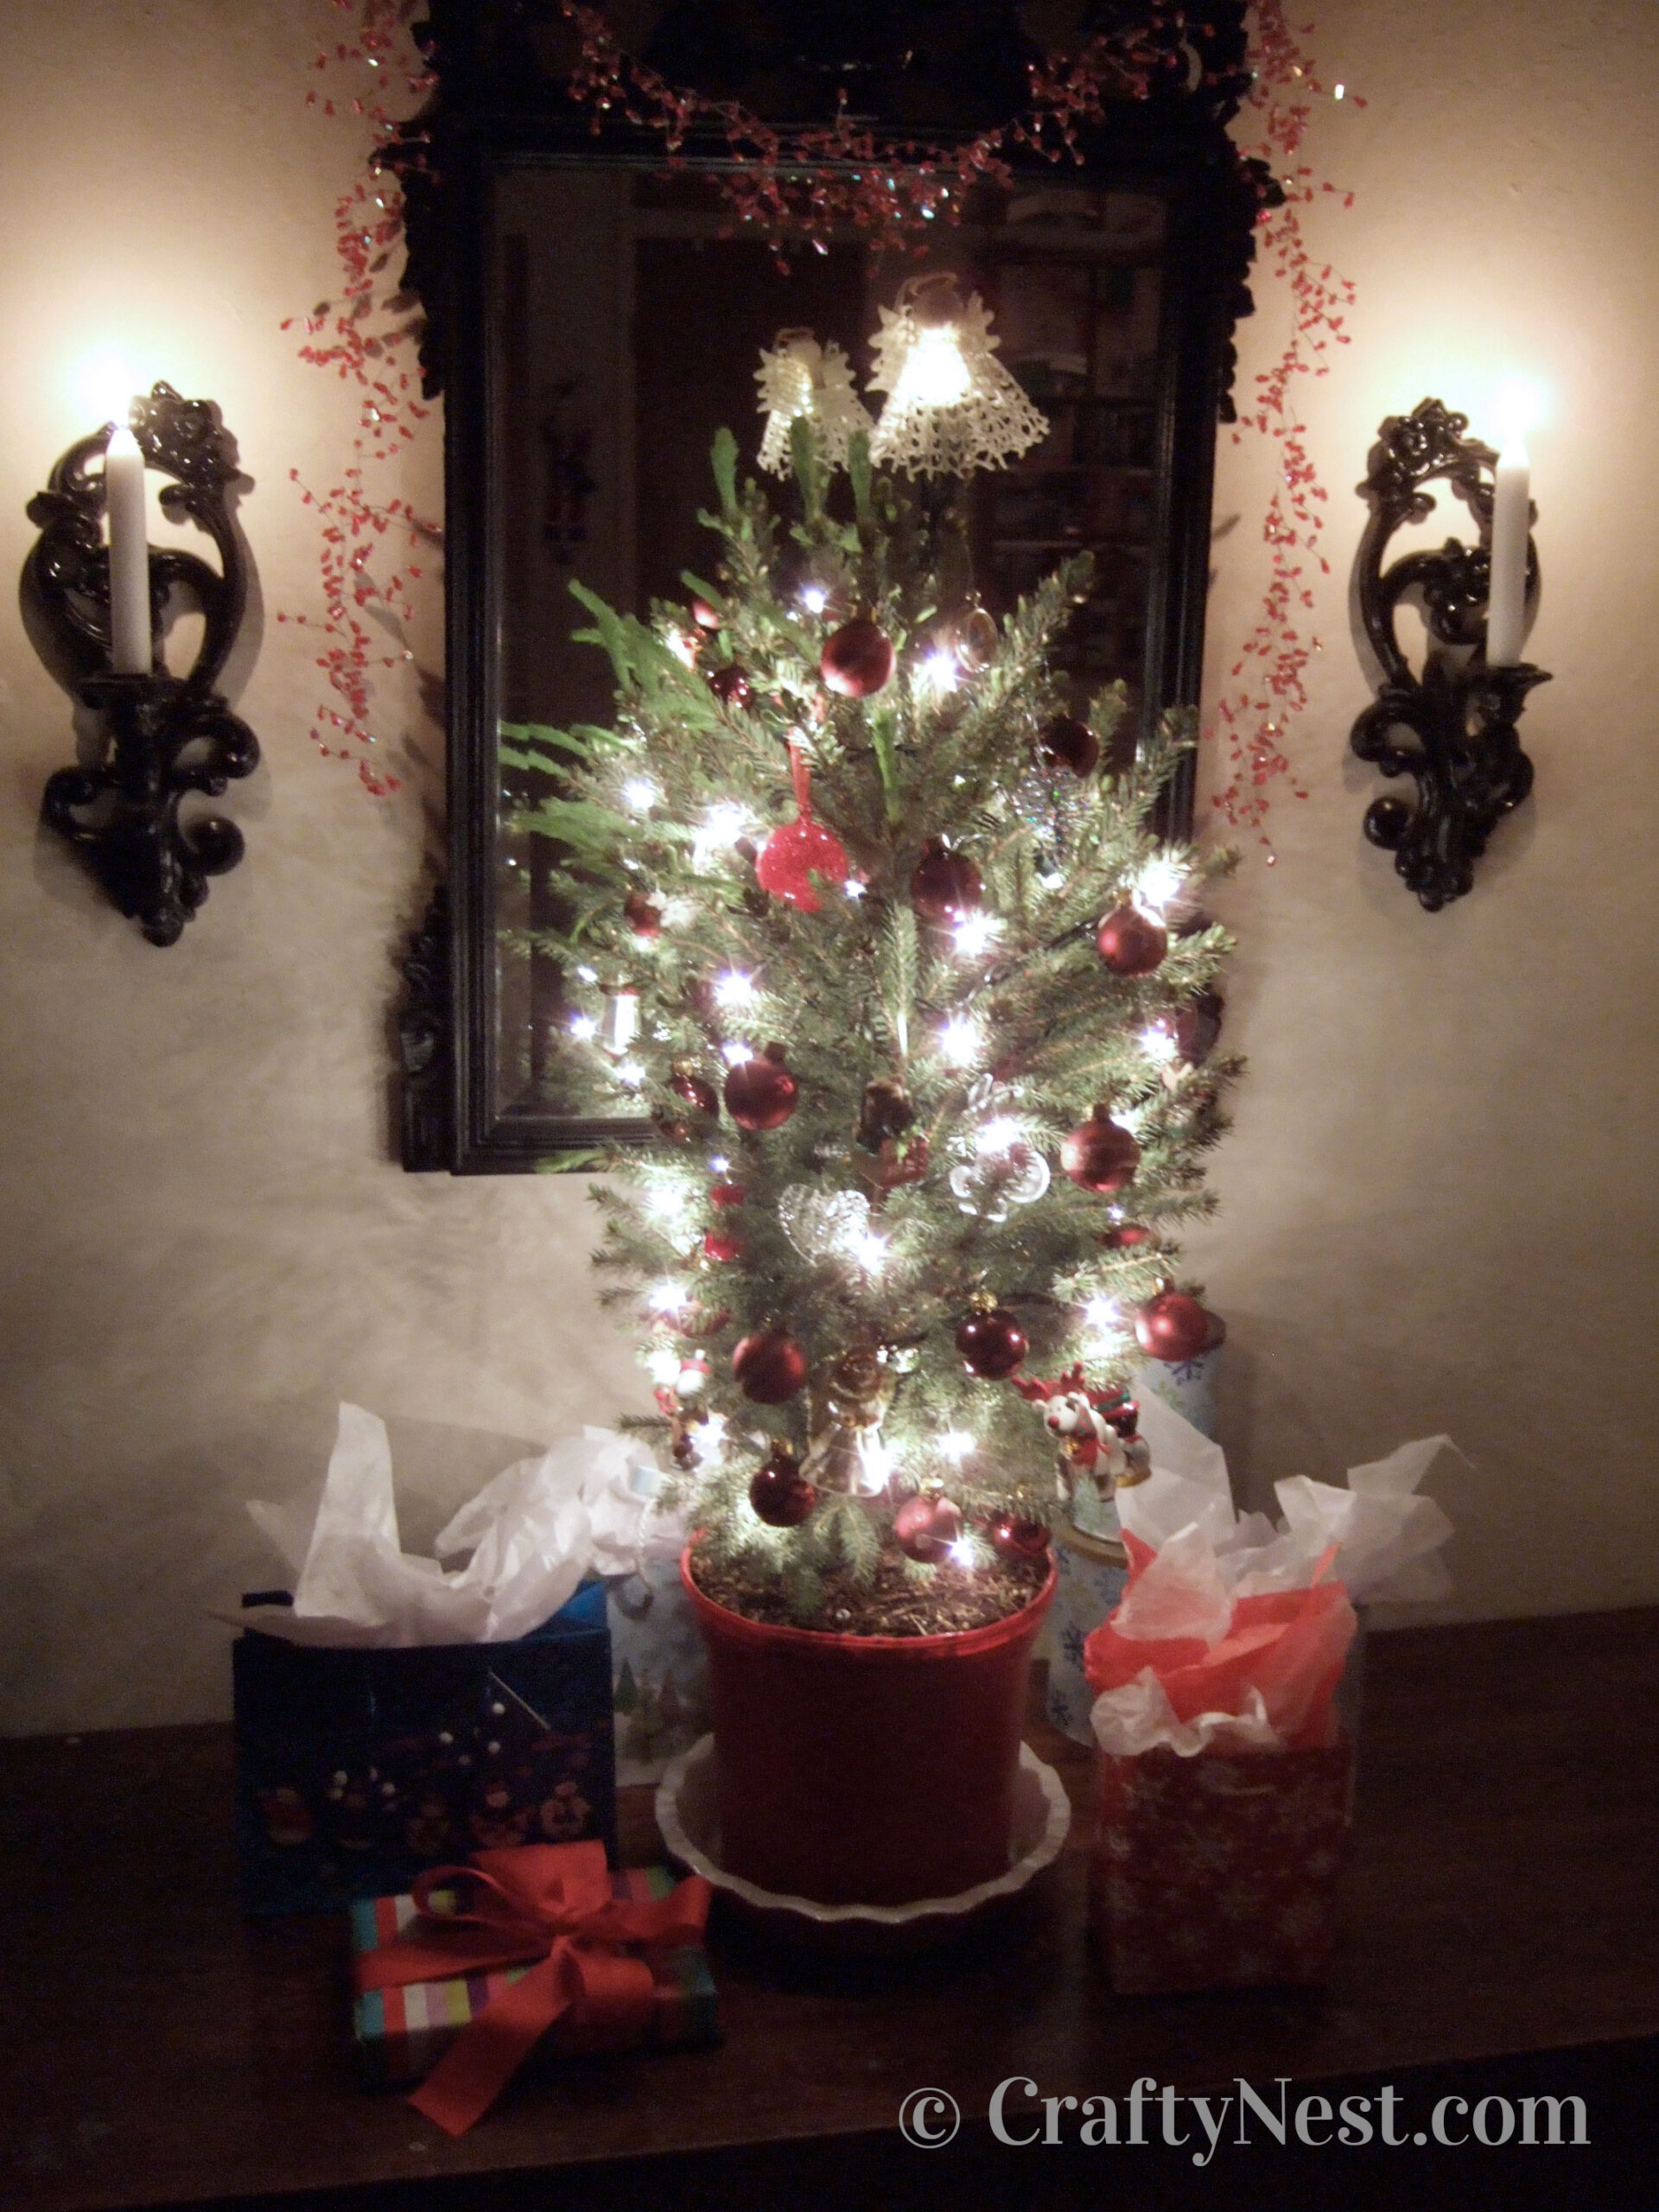 Lights and ornaments on a potted Christmas tree, photo